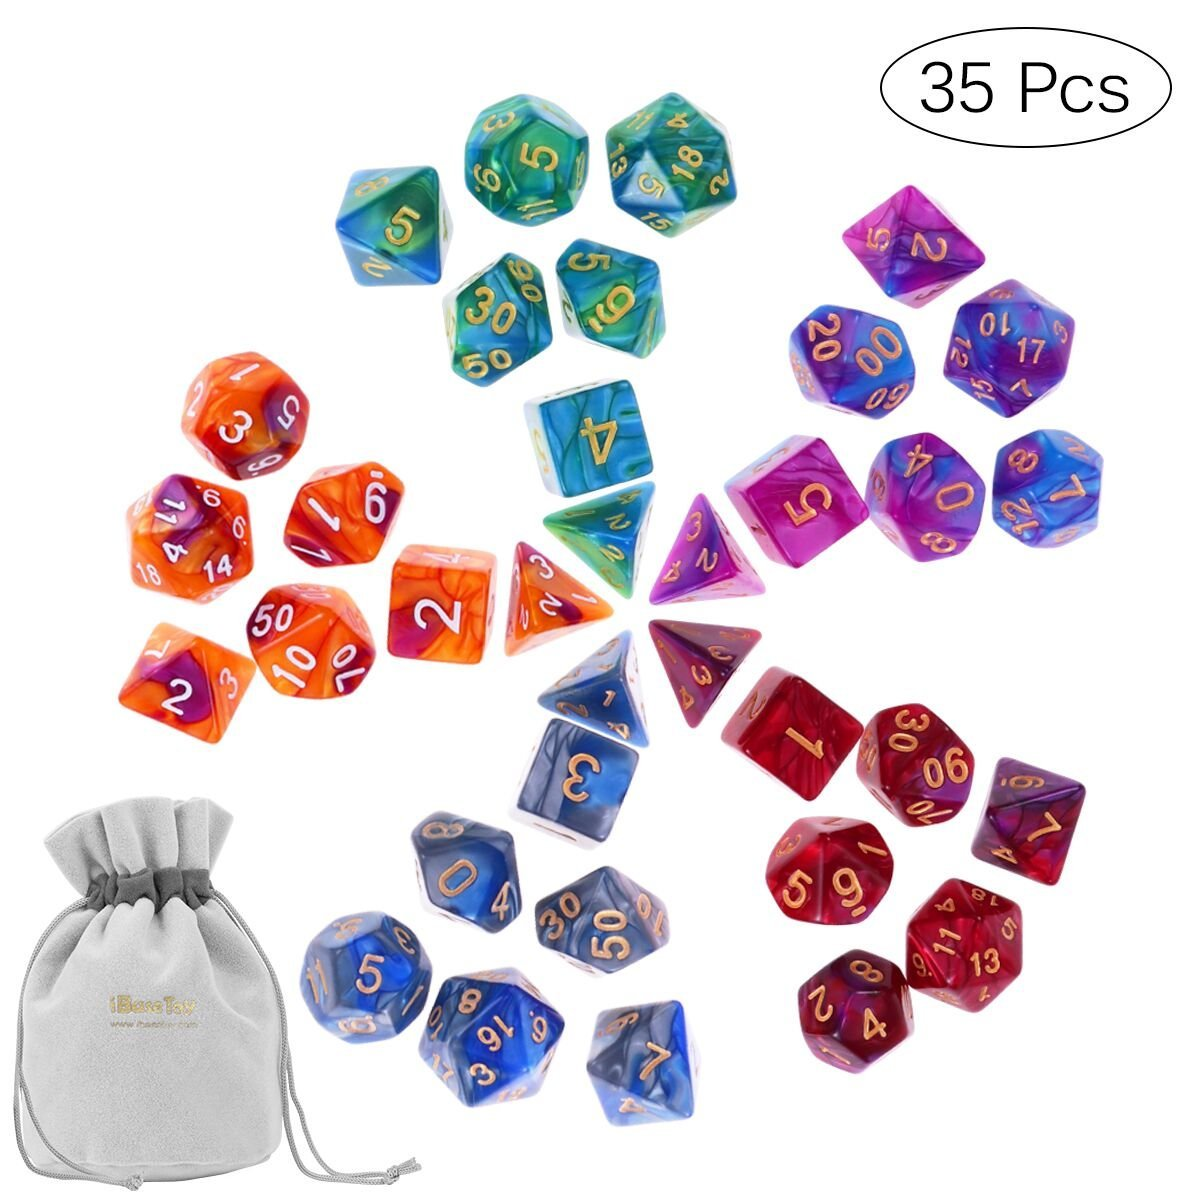 iBaseToy Double-Colors Polyhedral Dice, D&D Dice Set with Carry Pouch, 5 x 7--Dice Set for Dungeons and Dragons DND RPG MTG D20 D12 D10 D8 D4 D%Table Games Nice Toy Gifts